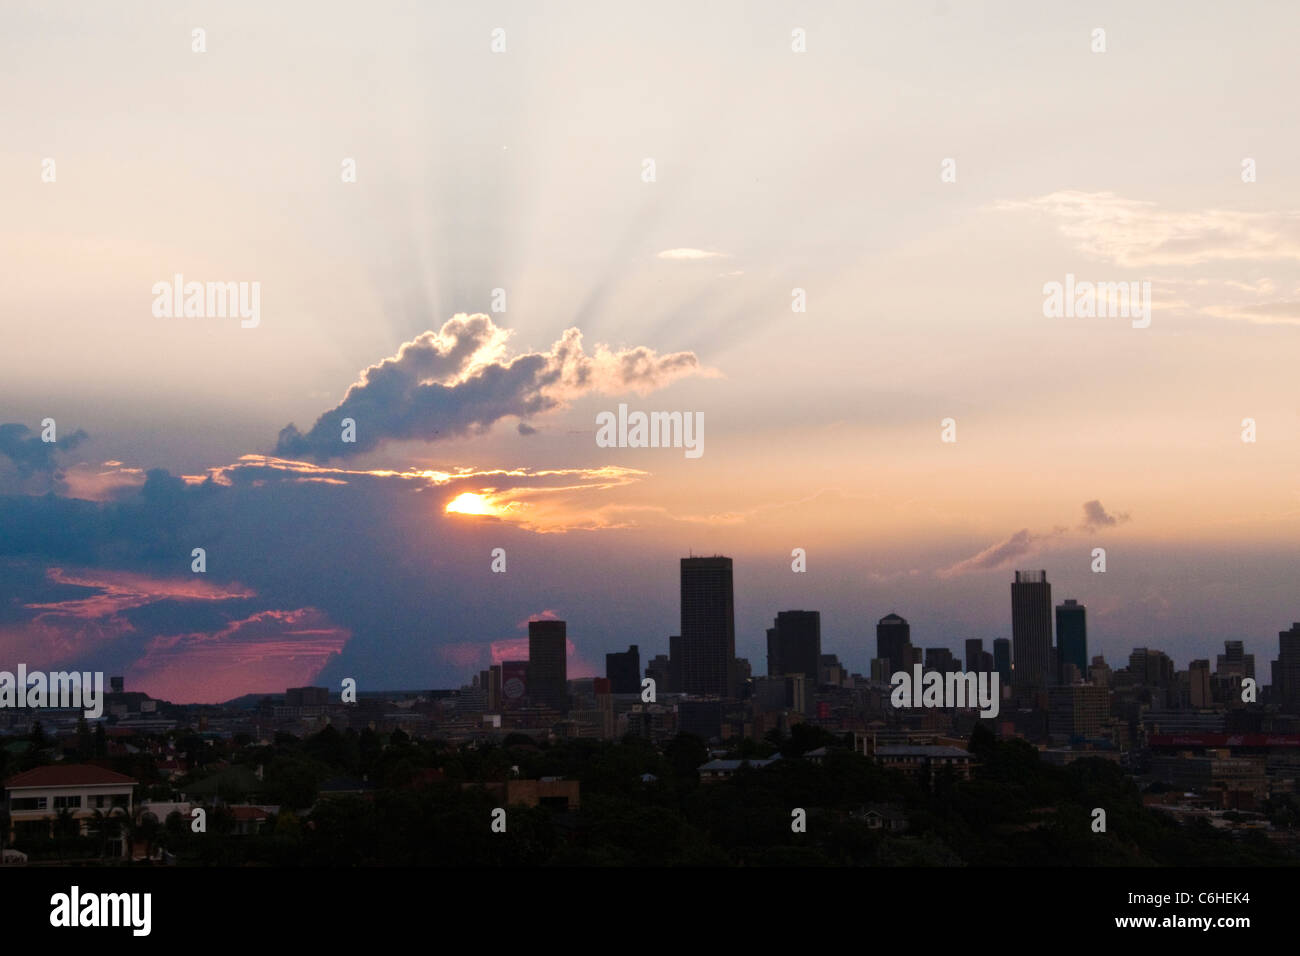 Johannesburg city skyline at dusk - Stock Image